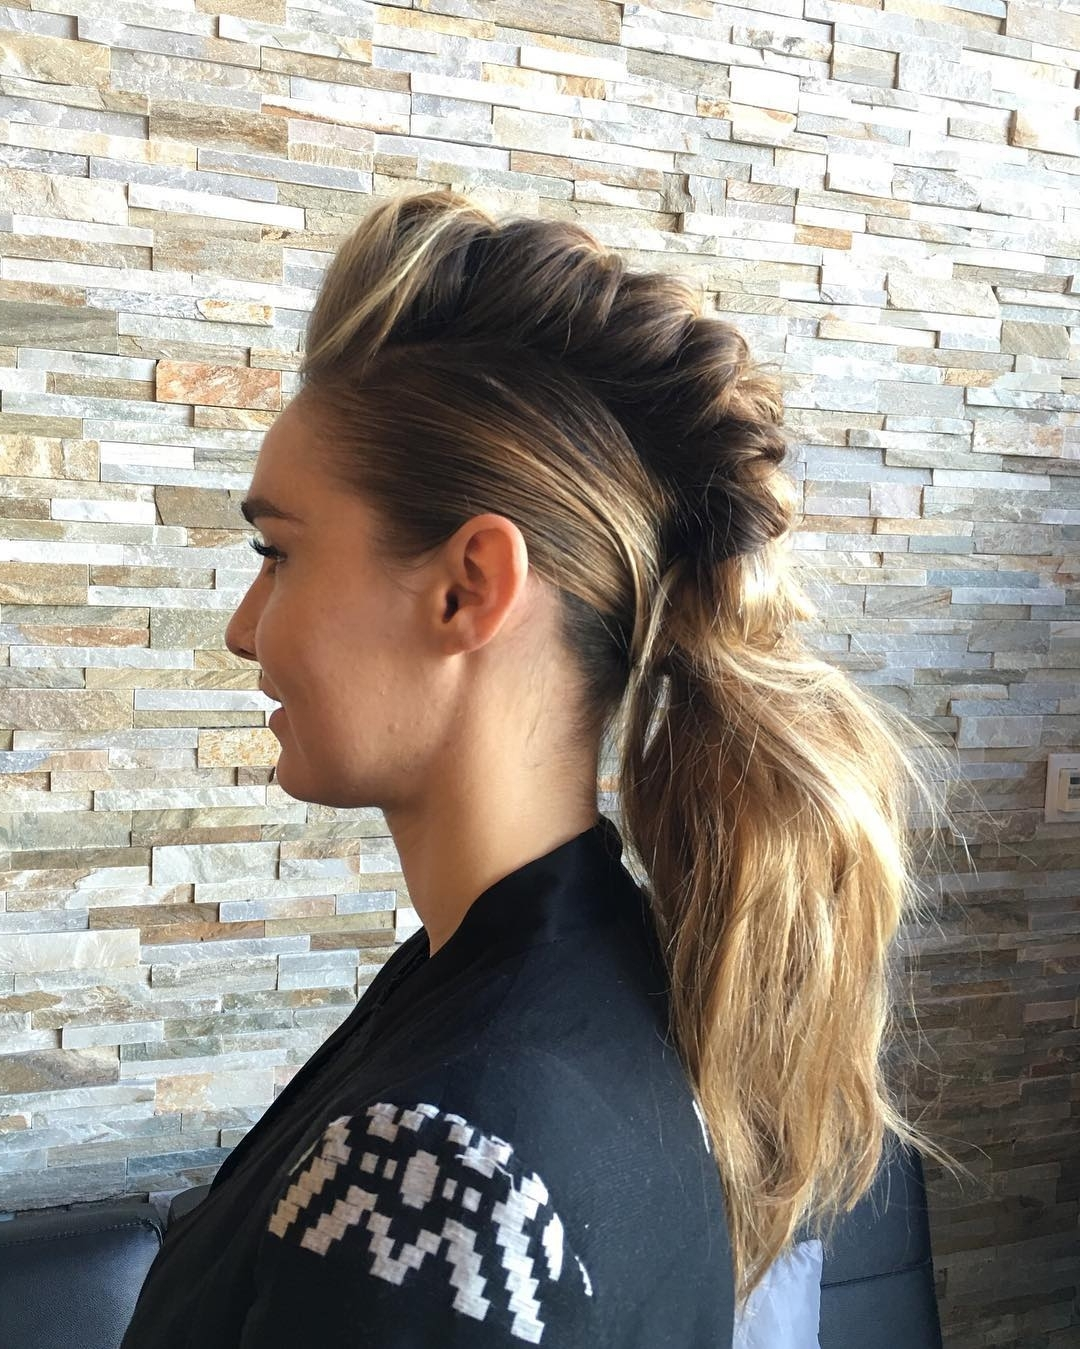 100 Cute Hairstyles For Long Hair (2018 Trend Alert) Within Cute Updos For Long Hair (View 12 of 15)